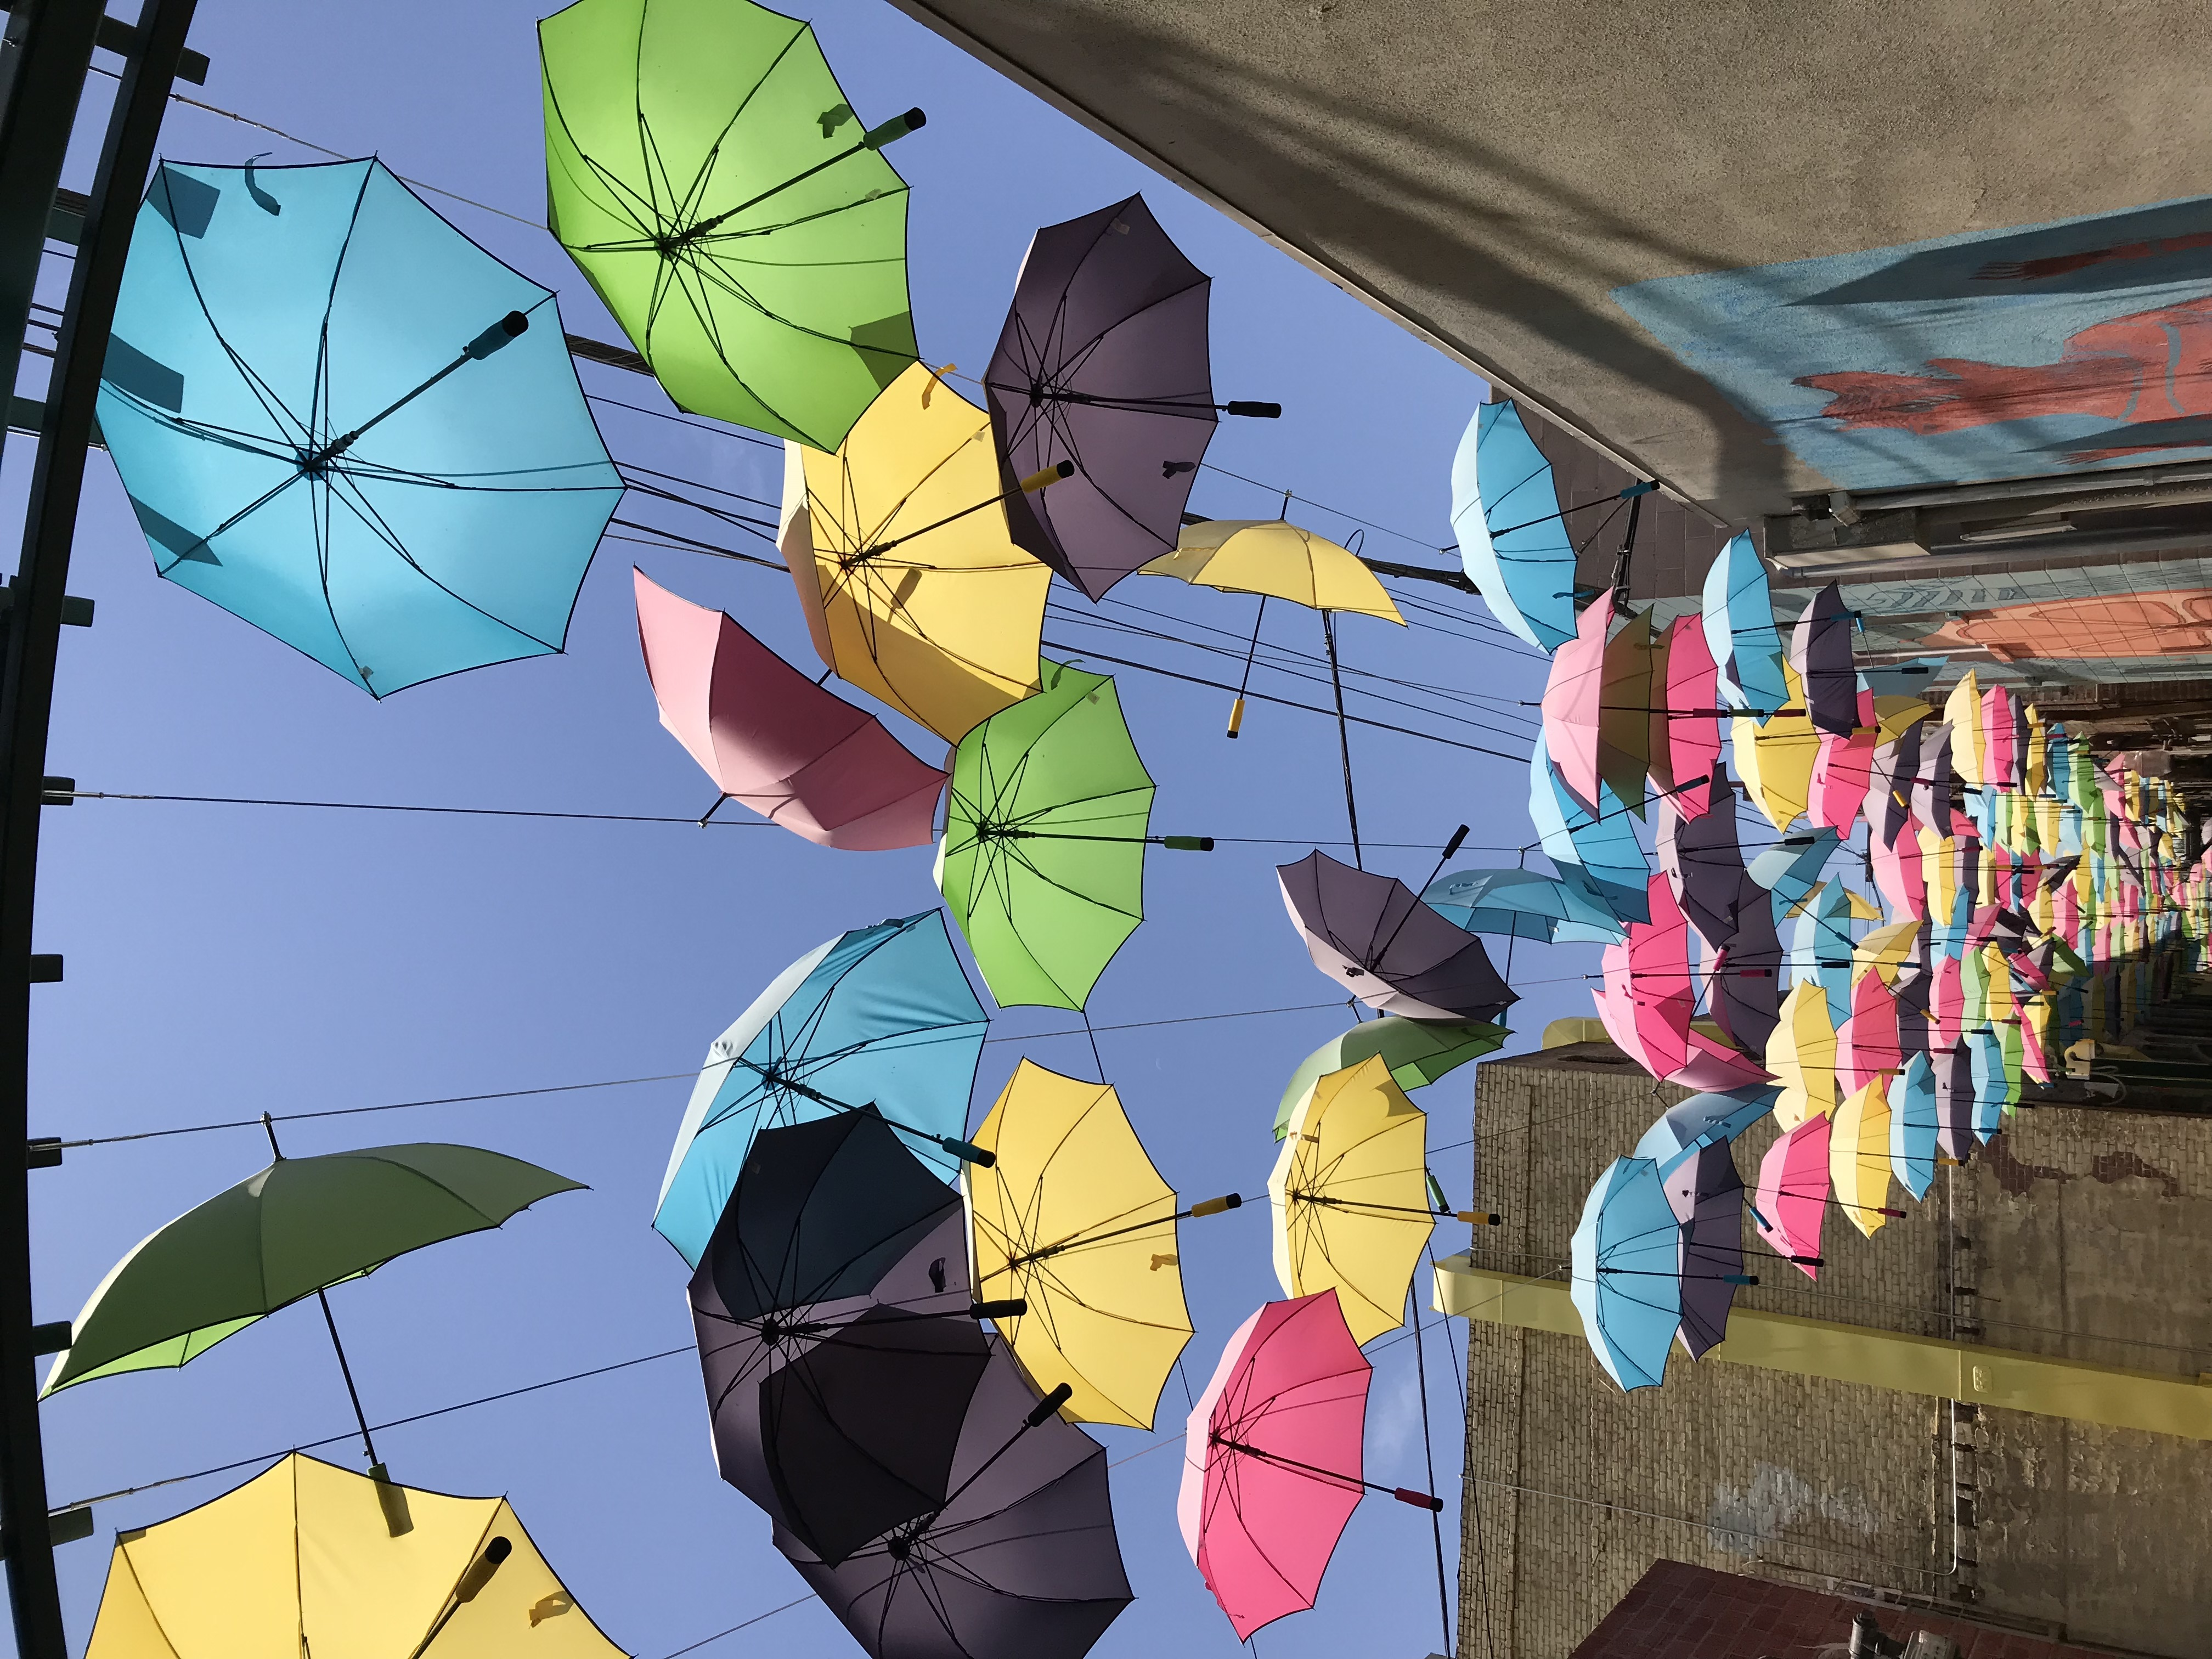 Colorful umbrellas on wires